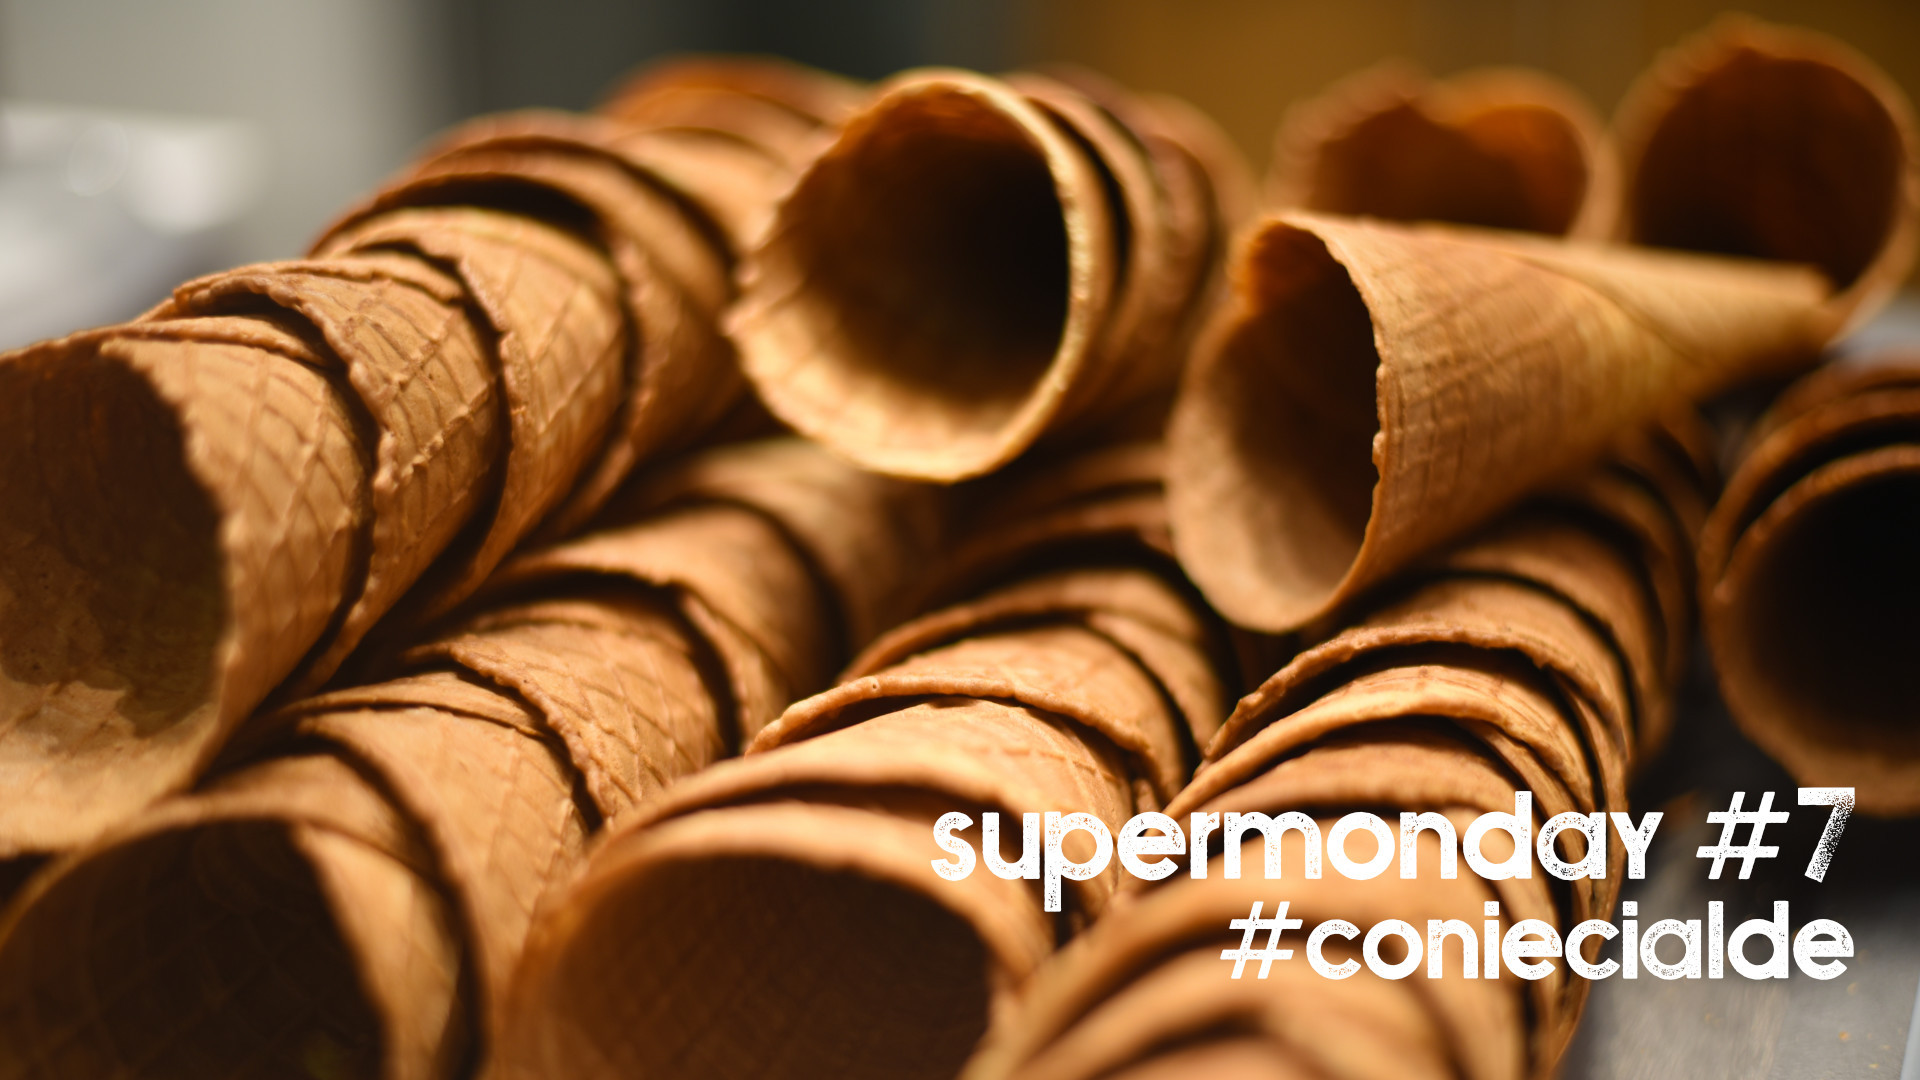 Super Monday #7 - #coniecialde